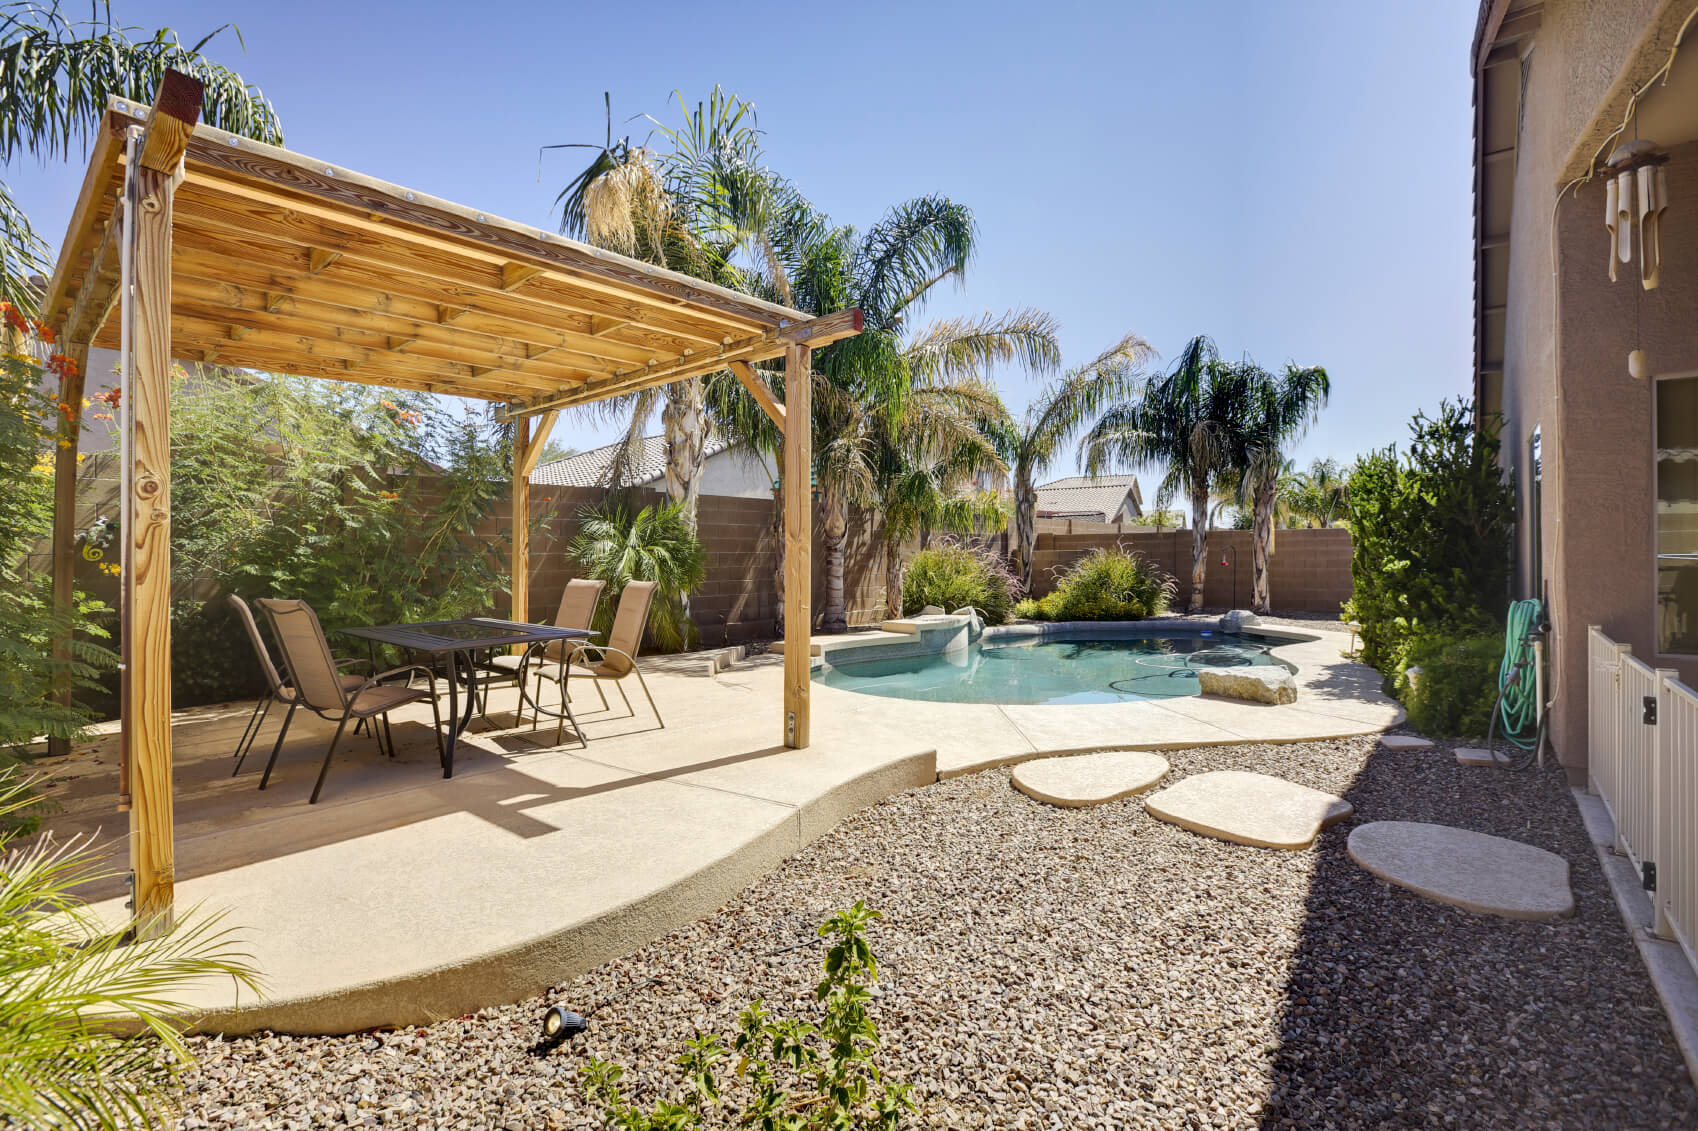 Best Patios in Phoenix Pergola Designs for Shade & More